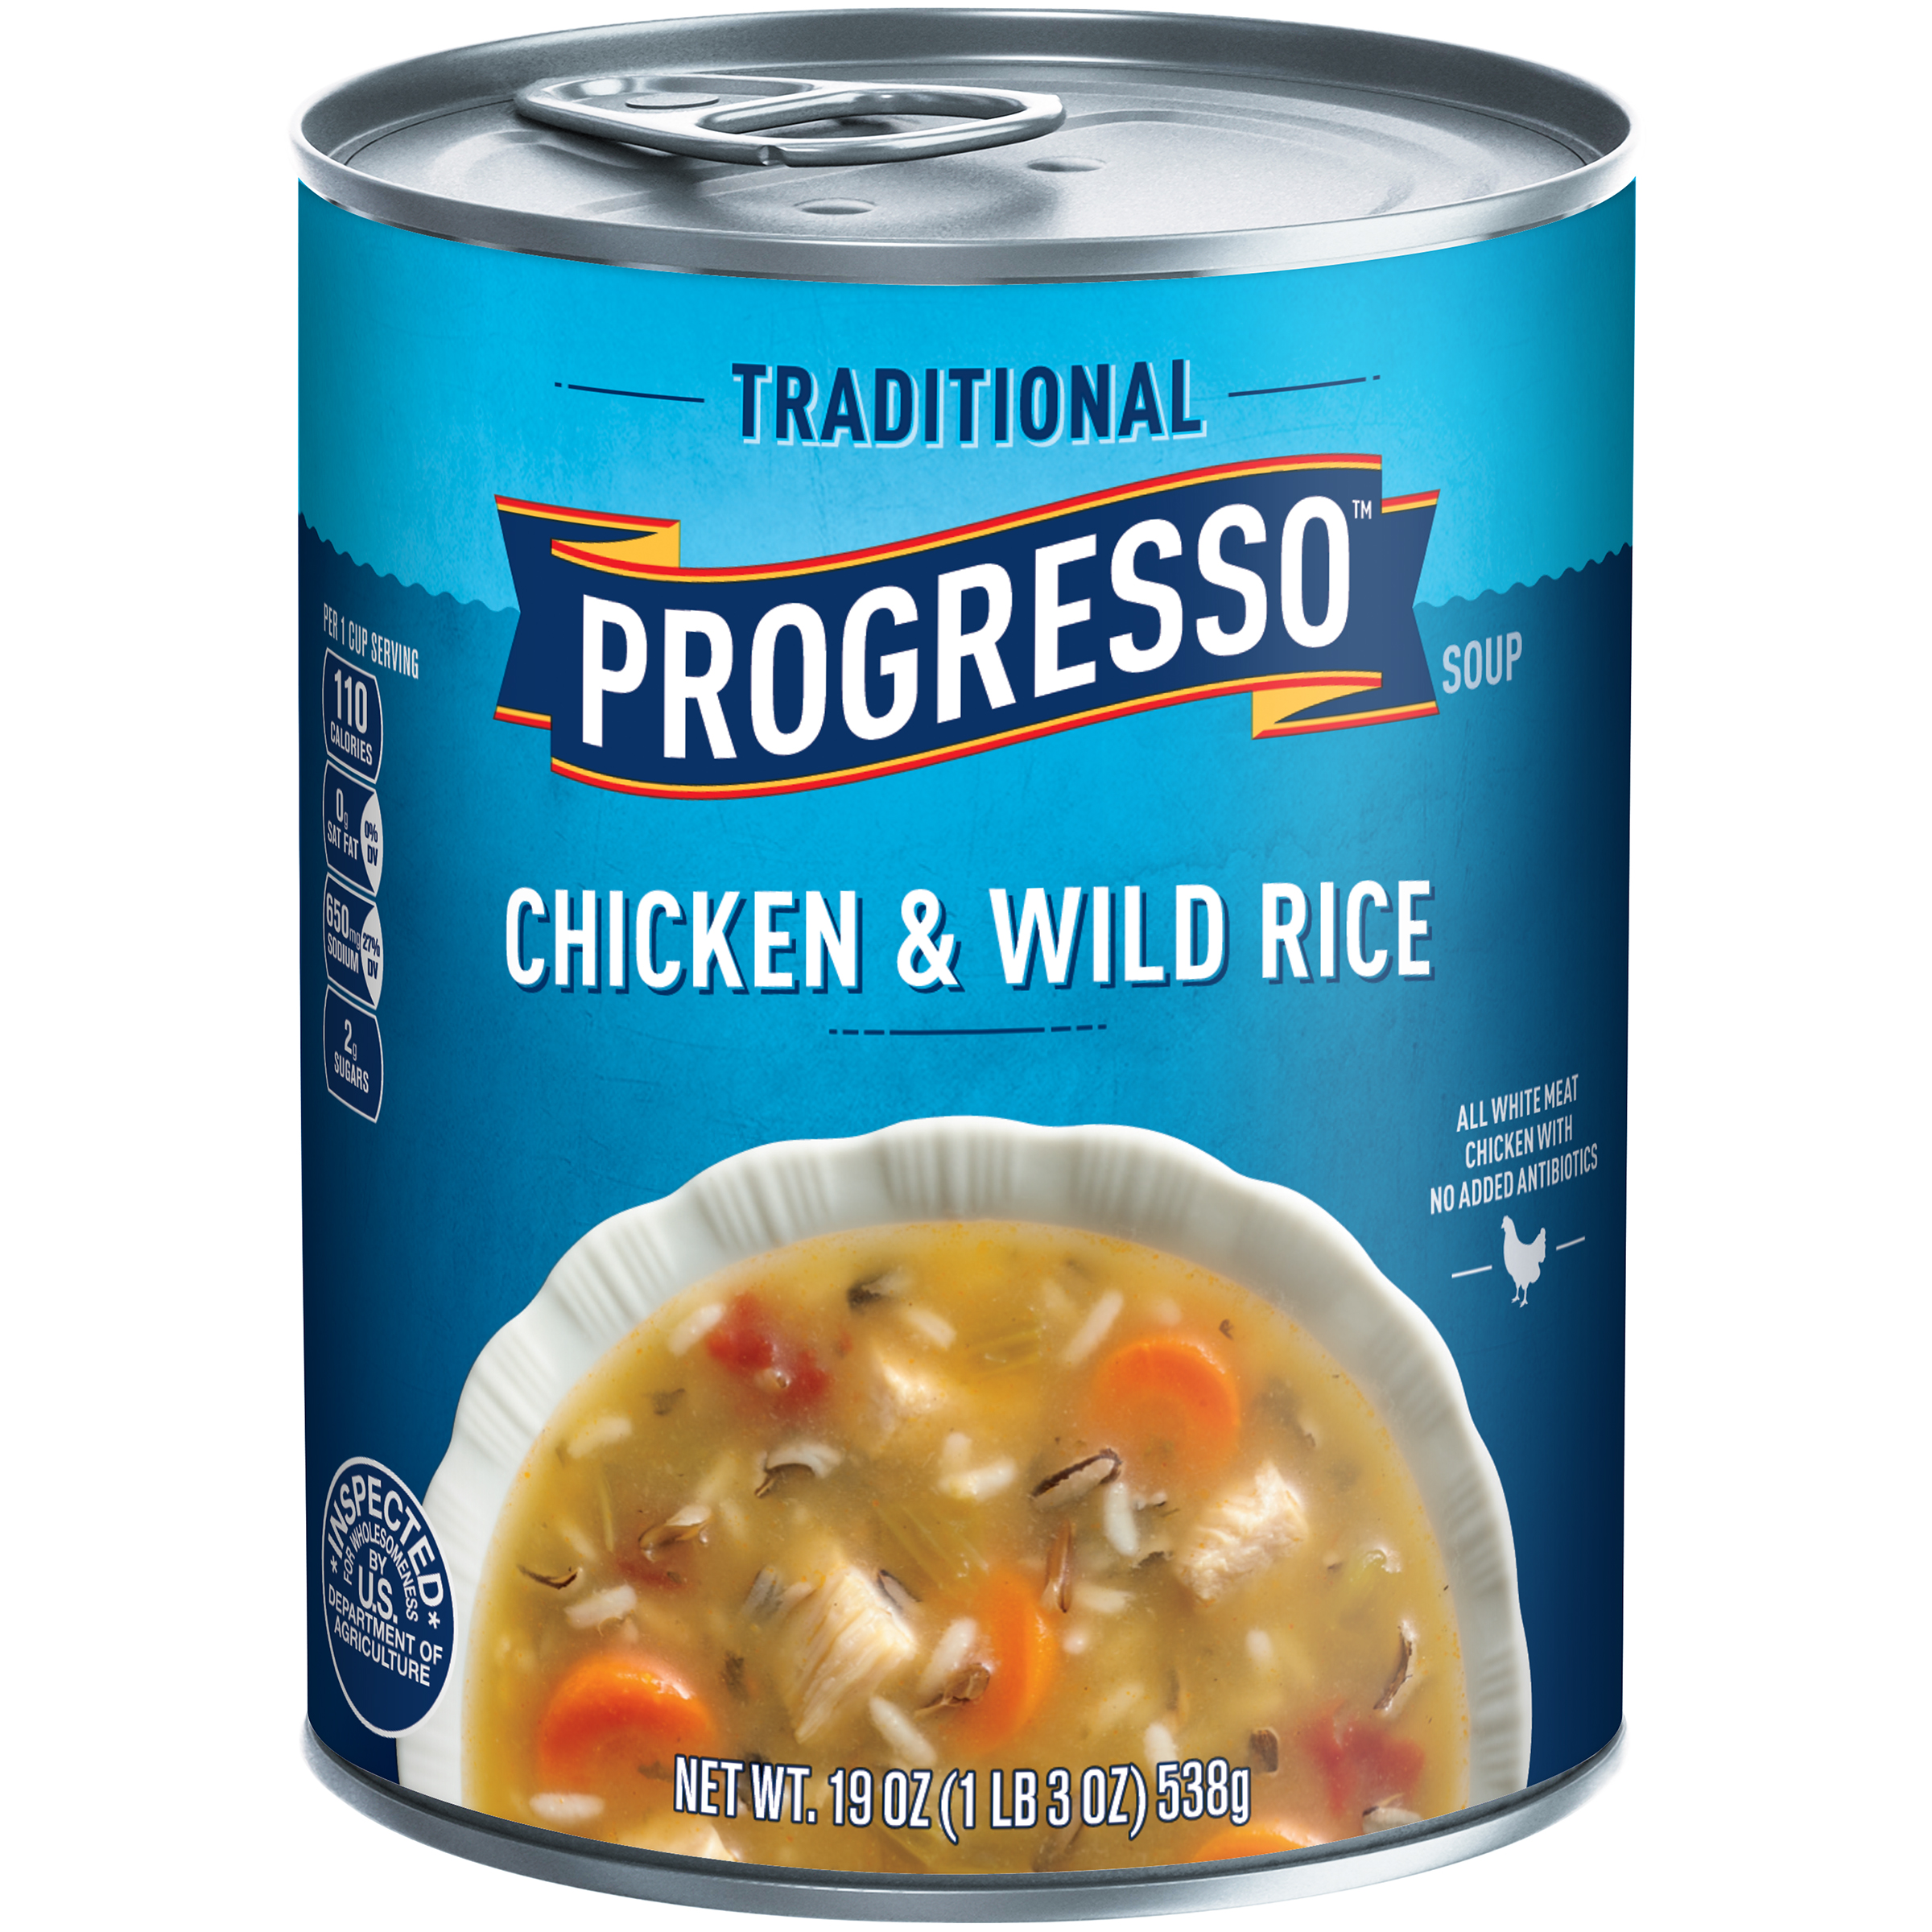 Progresso�� Traditional Chicken & Wild Rice Soup 19 oz. Can